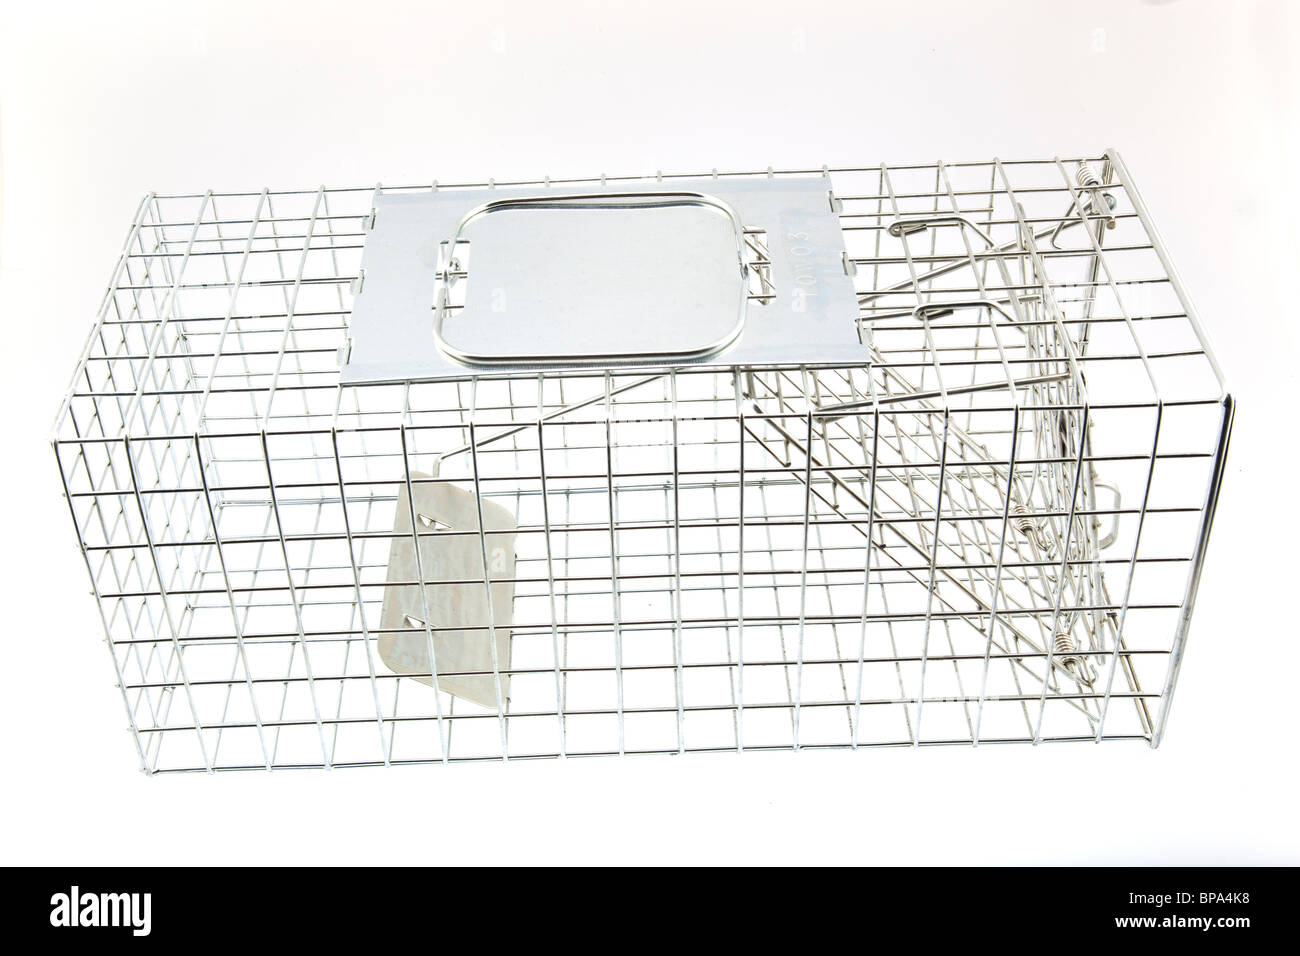 Humane trap for squirrels - Stock Image